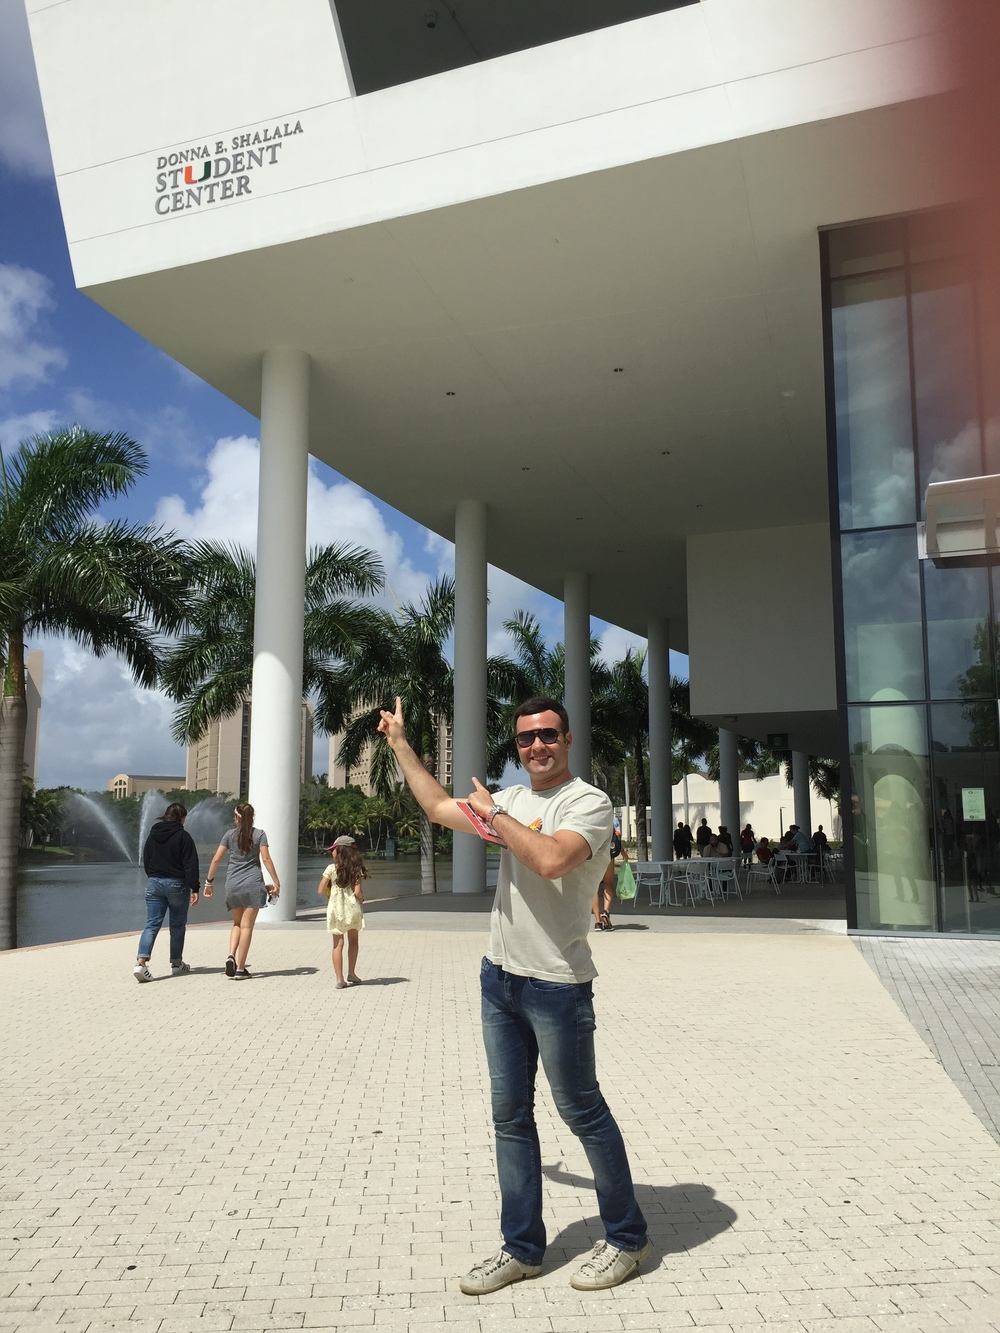 University of Miami – LogicPrep College Tours